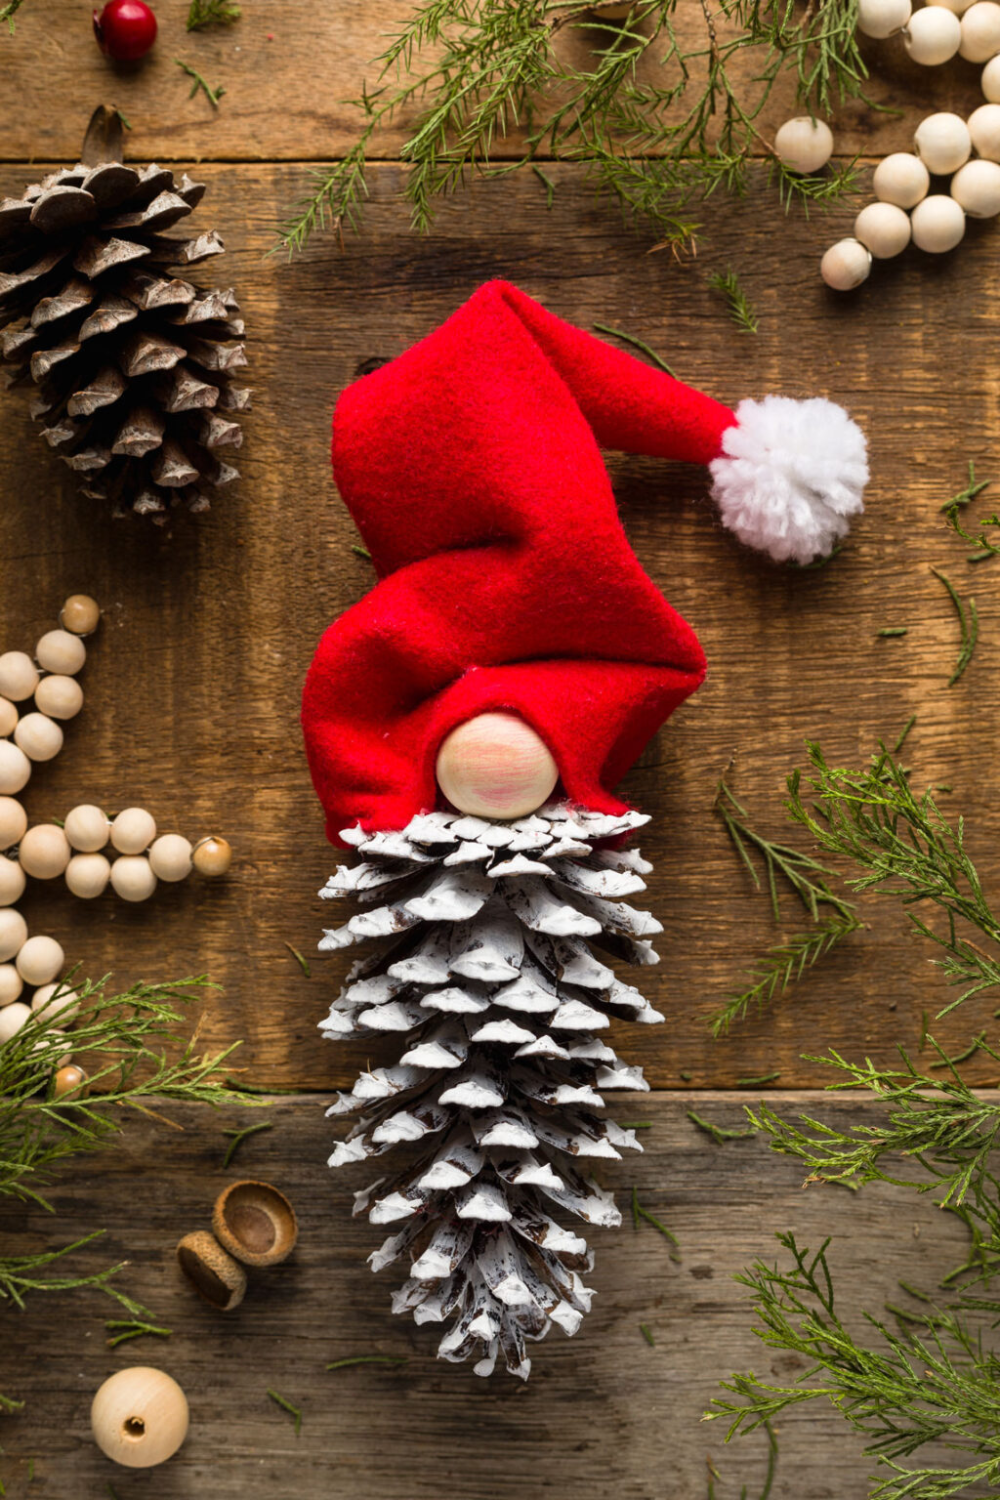 How To Make Easy Christmas Pinecone Gnome Ornaments Olivia Ohern Pinecone Crafts Christmas How To Make Ornaments Kids Christmas Ornaments